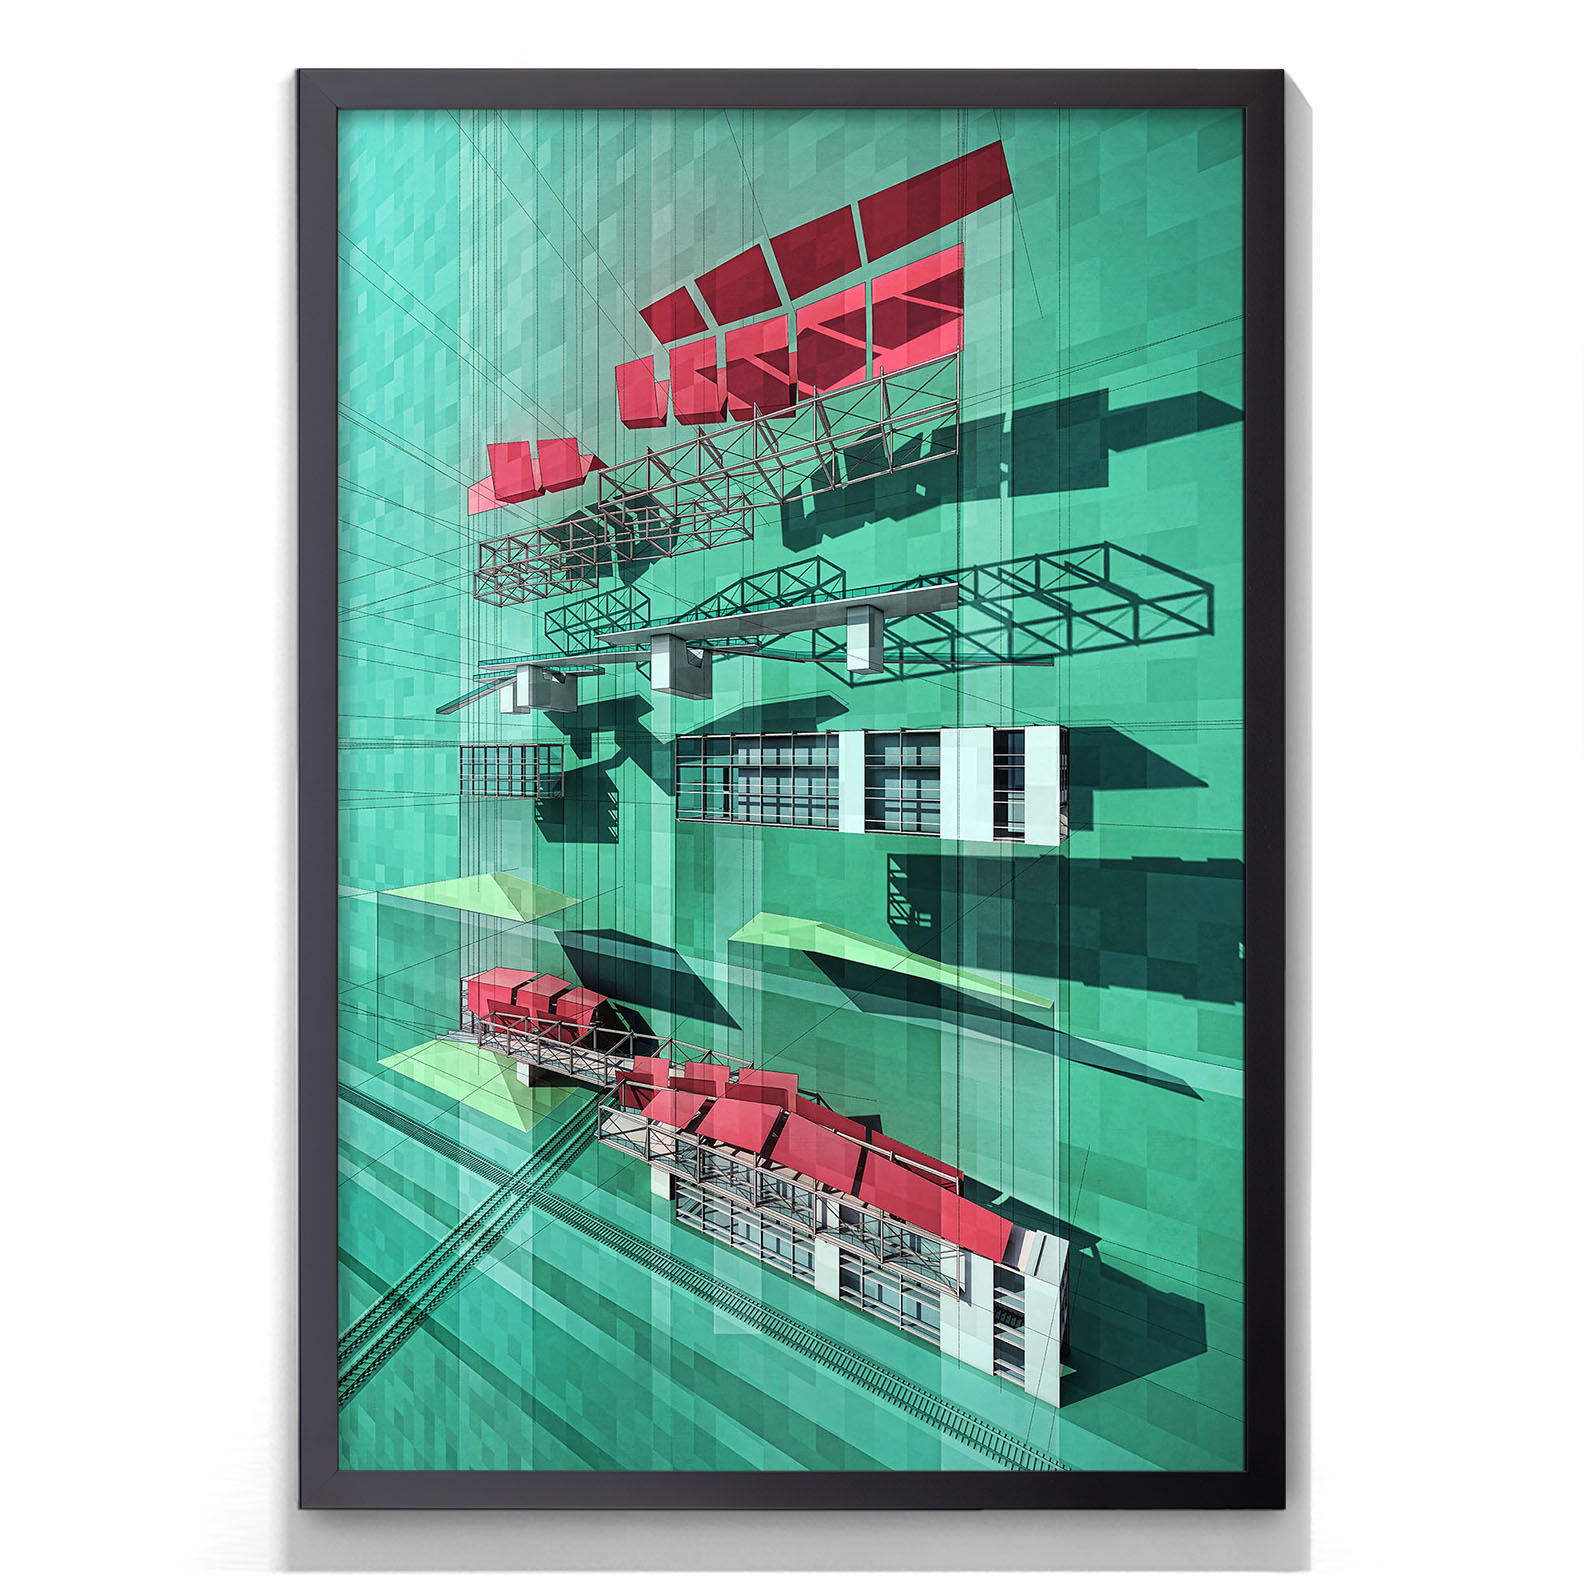 exploded axon framed poster visualizing architecture